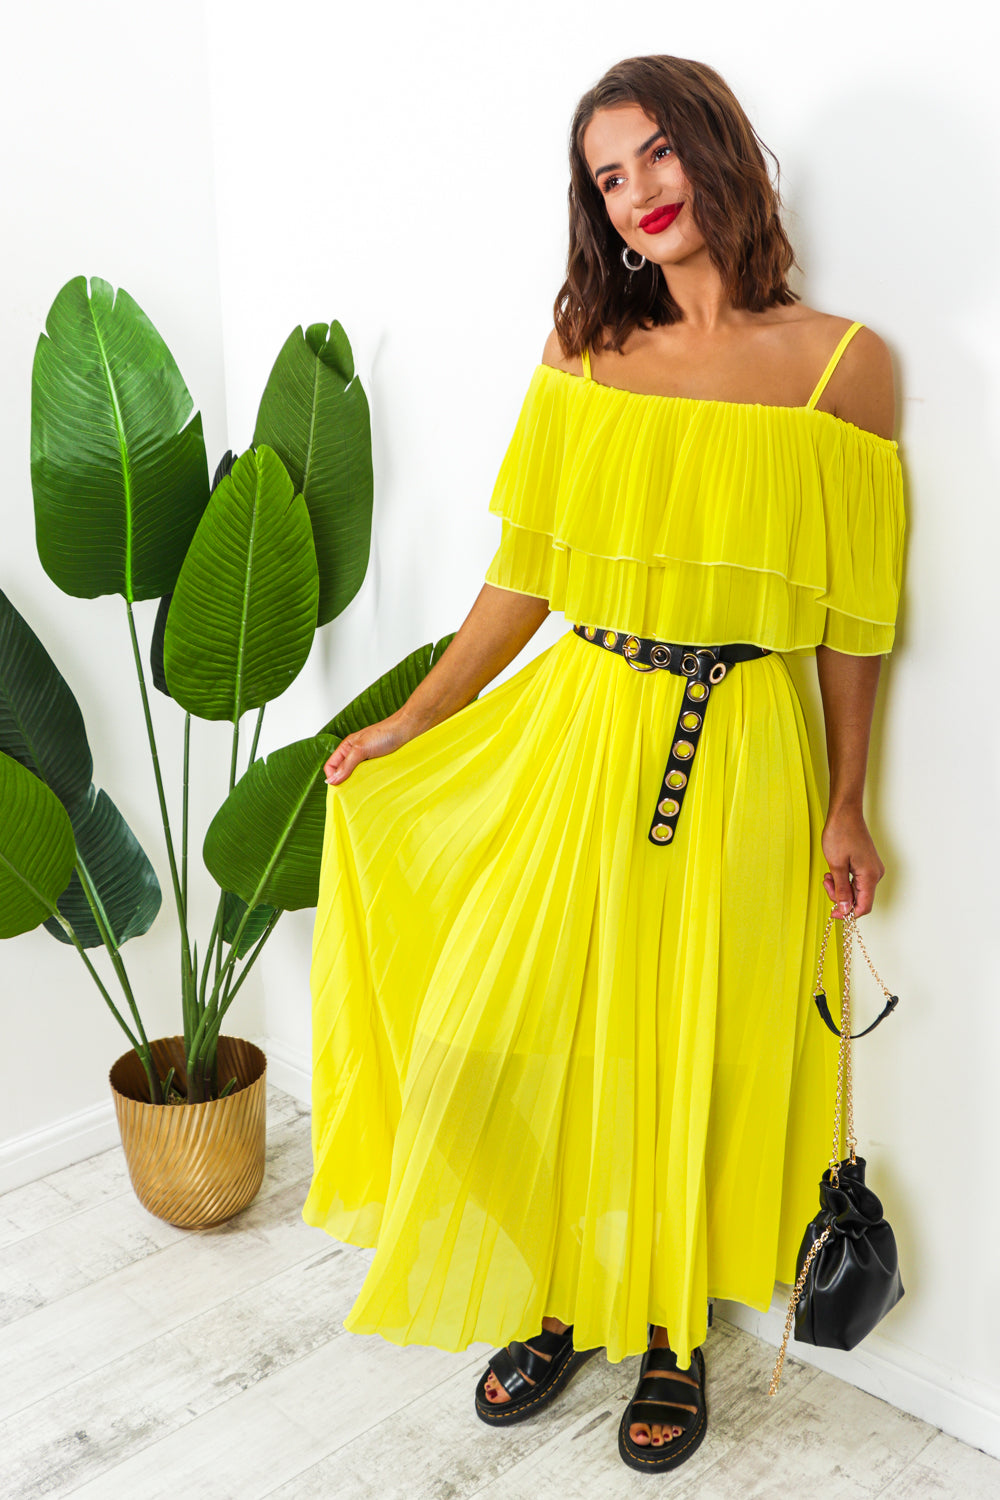 Yellow pleated dress -DLSB womens fashion